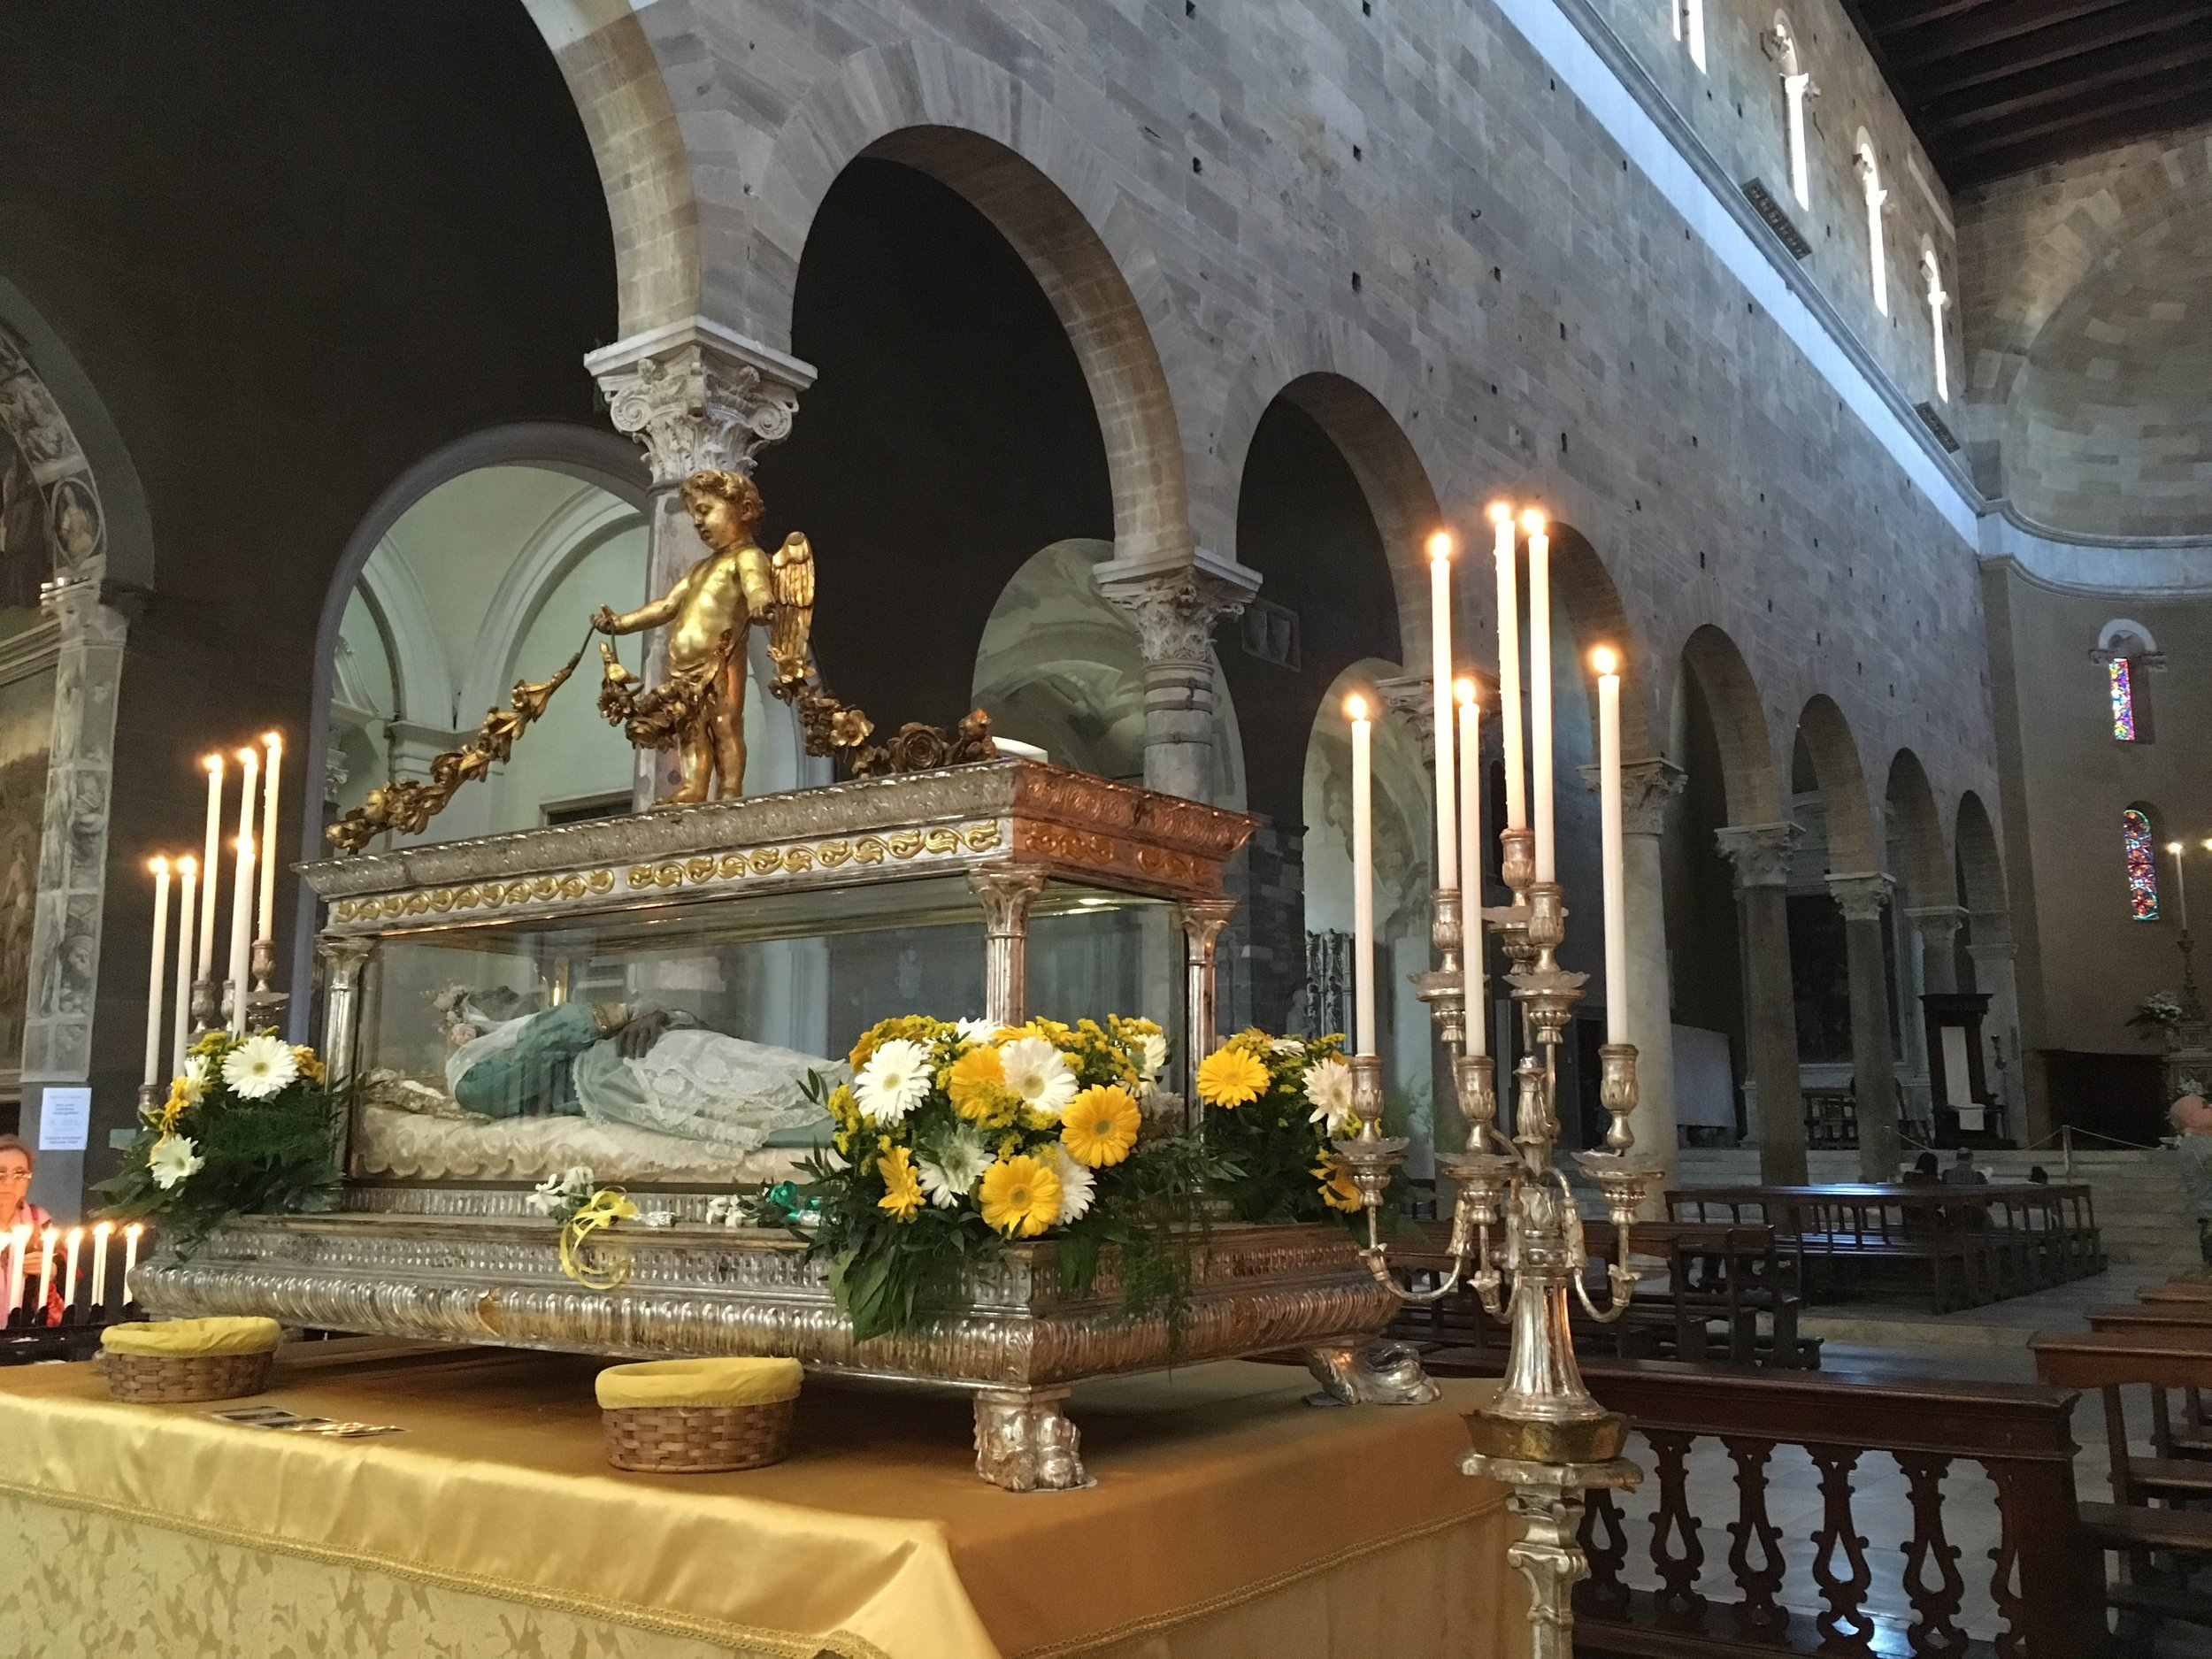 The body of Santa Zita is moved to the center of the cathedral of San Frediano during her annual celebration.